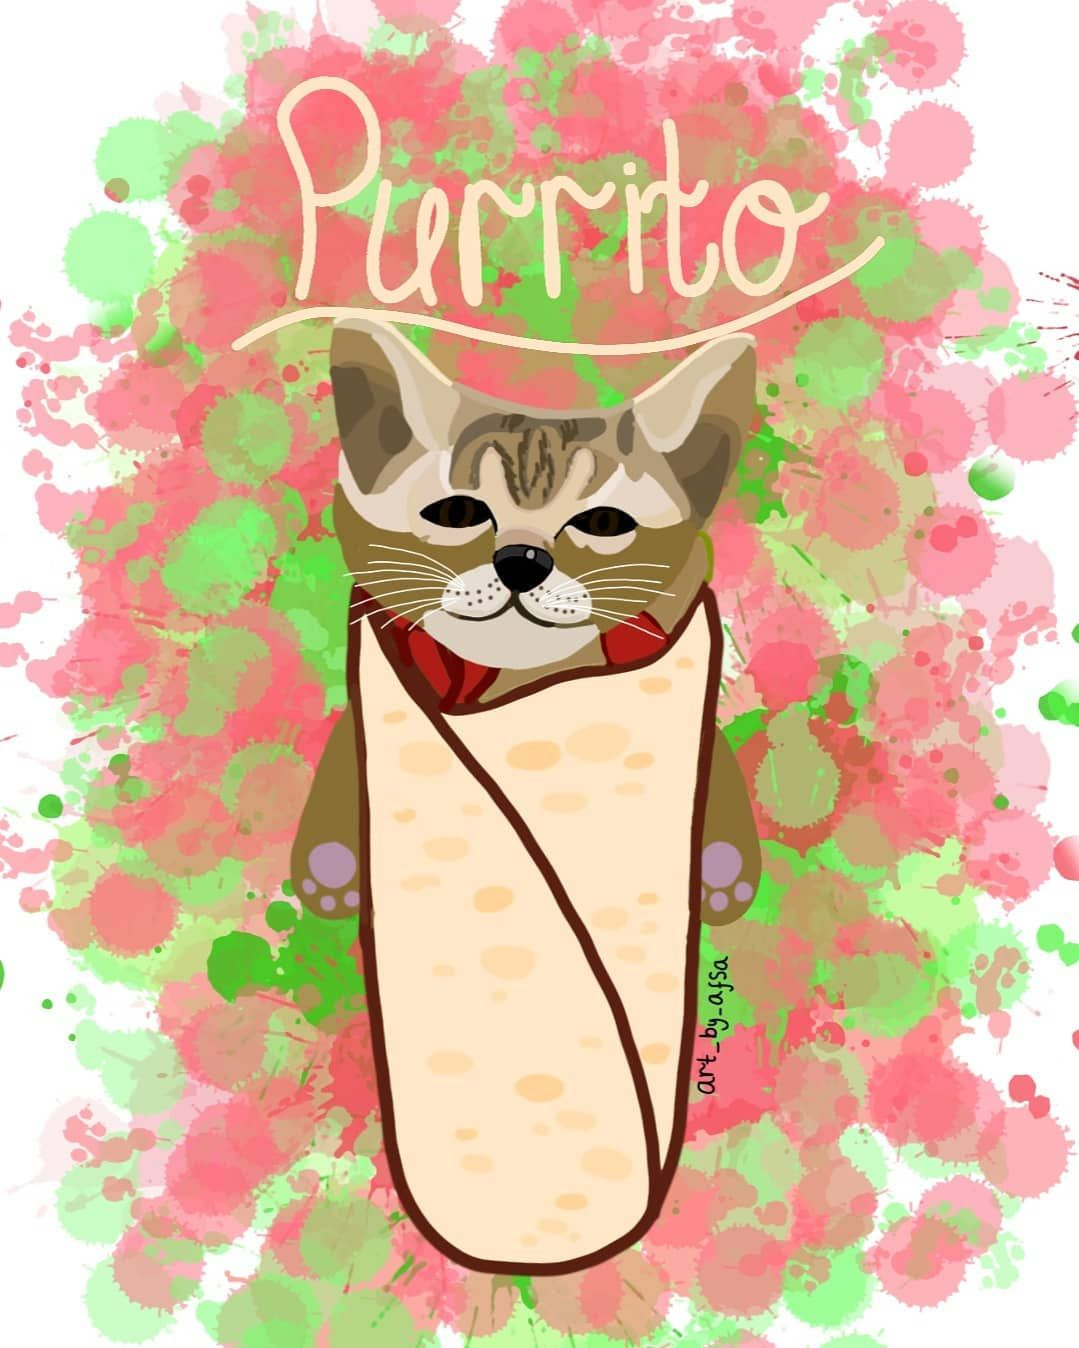 New The 10 Best Home Decor With Pictures A Request For Emma Fosters I Loved This Idea Of A Burrito Cat Purrito Pur Cat Art Digital Drawing Cat S